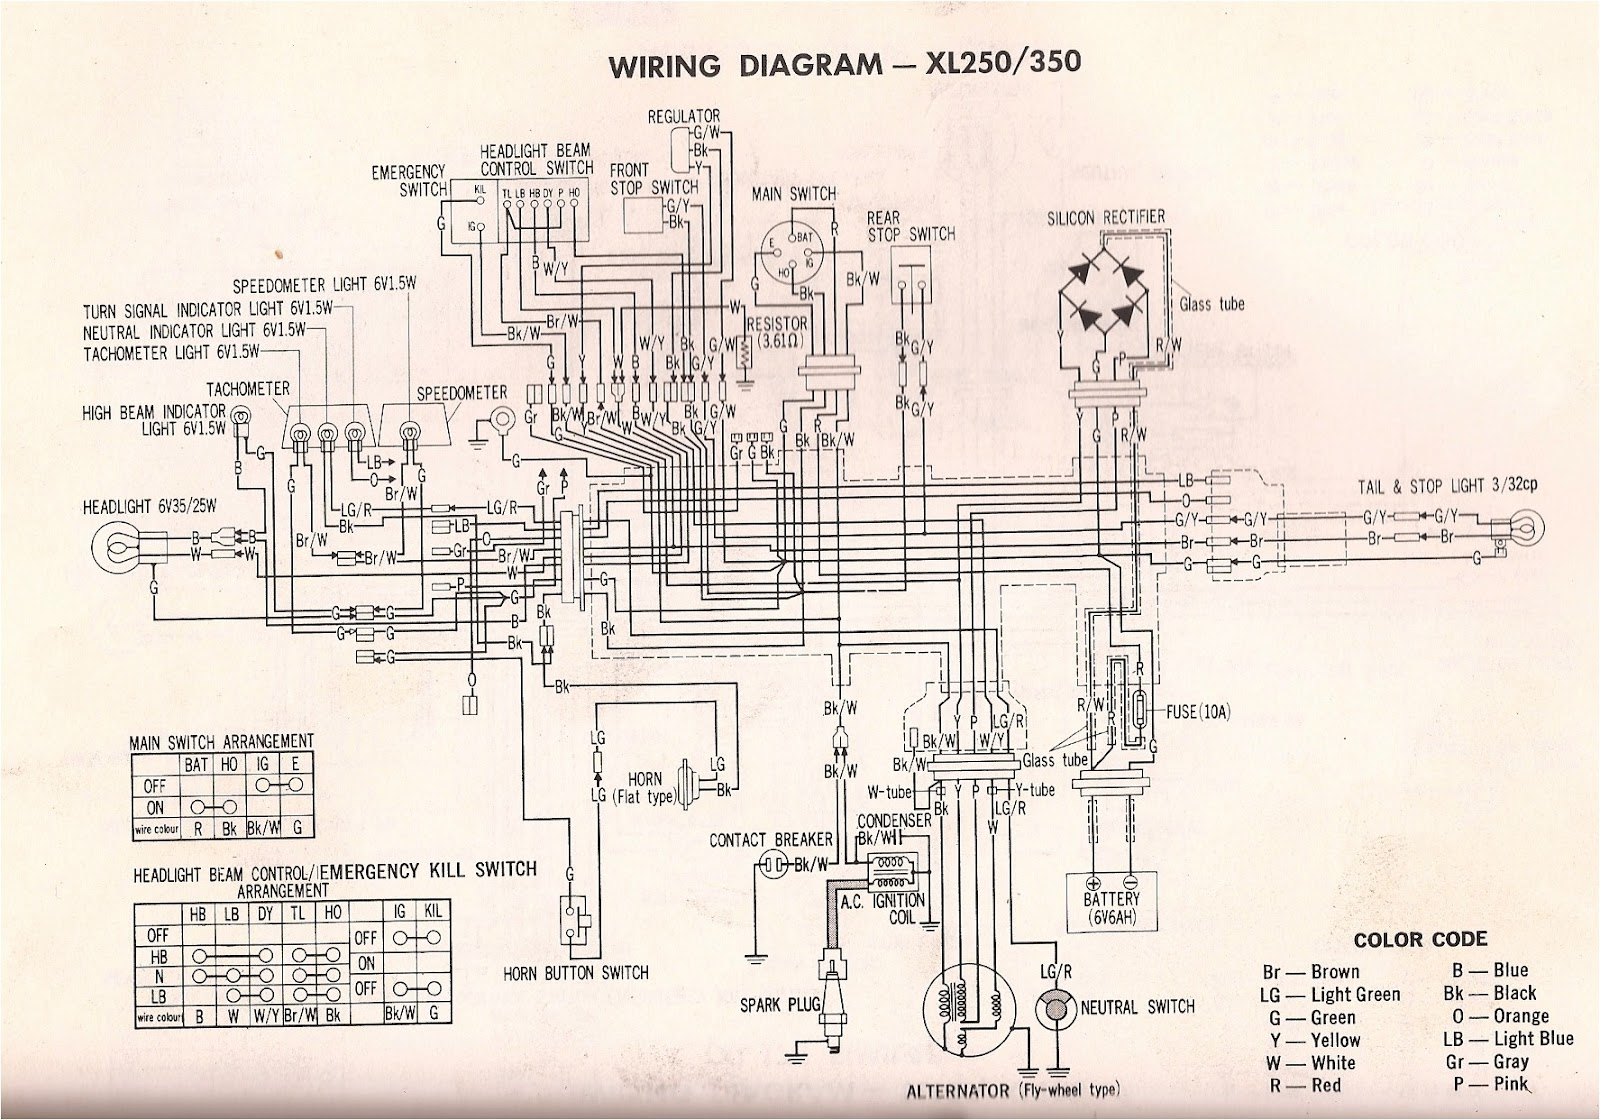 XL350+Wiring+diagram+S r4l xl350 wiring diagram (and xl250)  at aneh.co